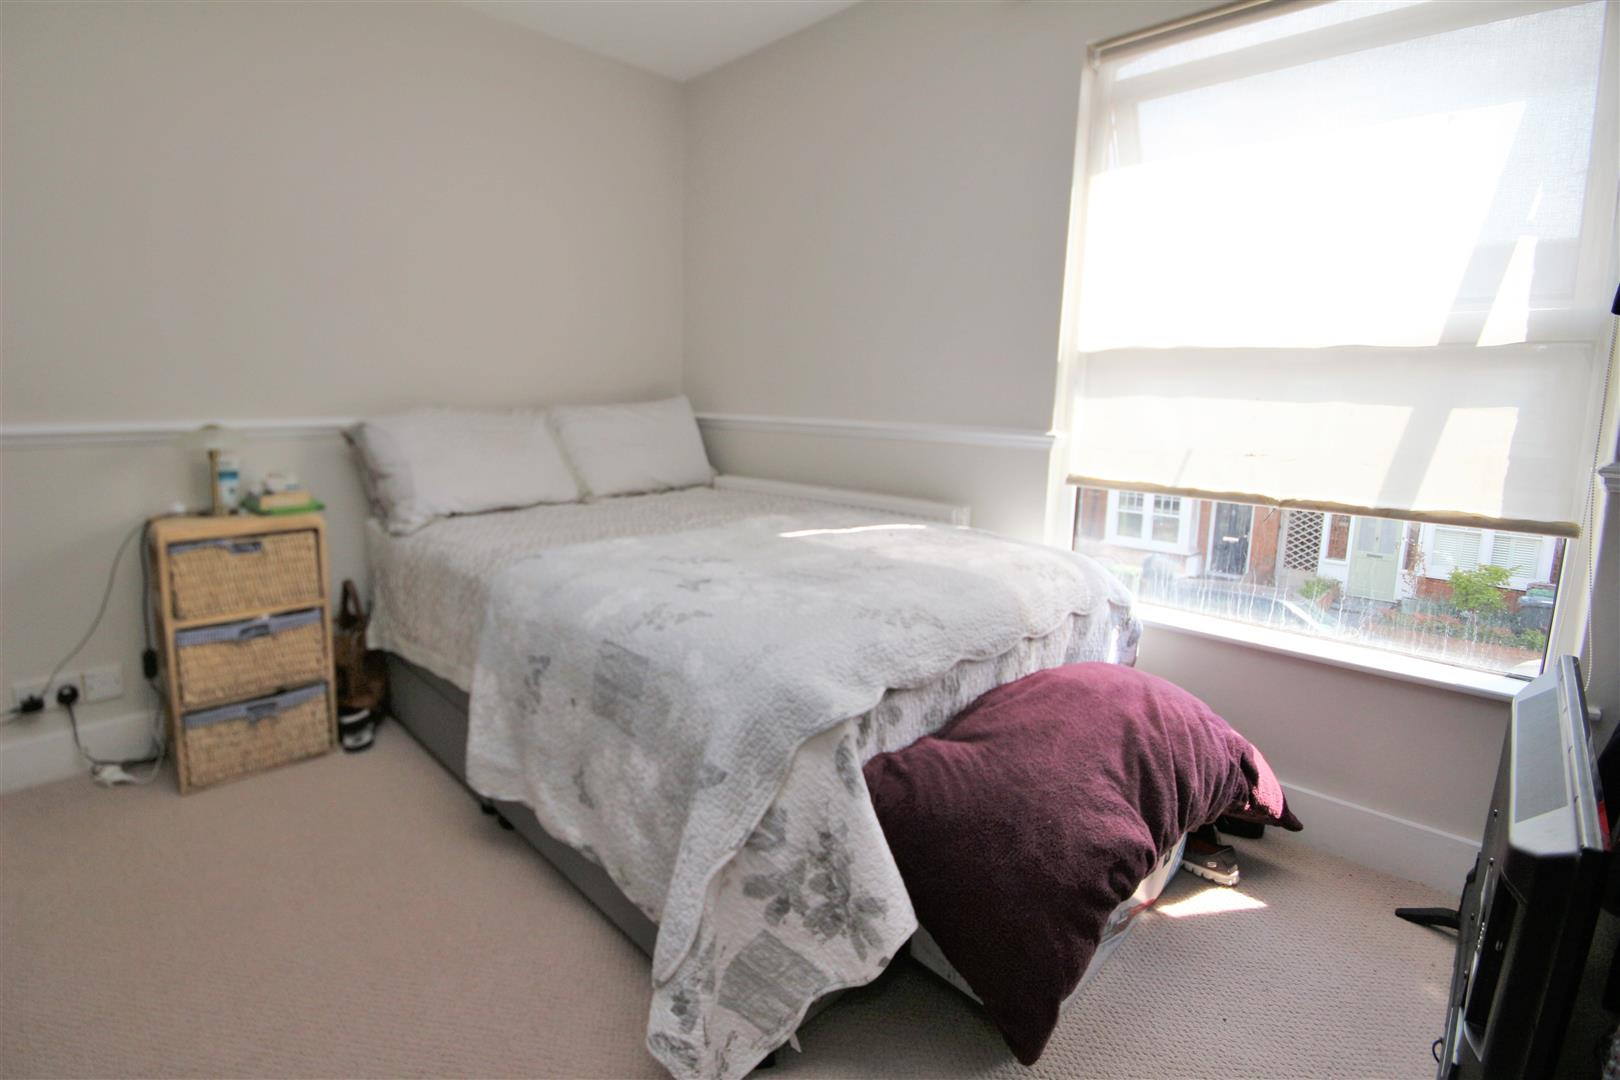 2 bed to rent - (Property Image 5)